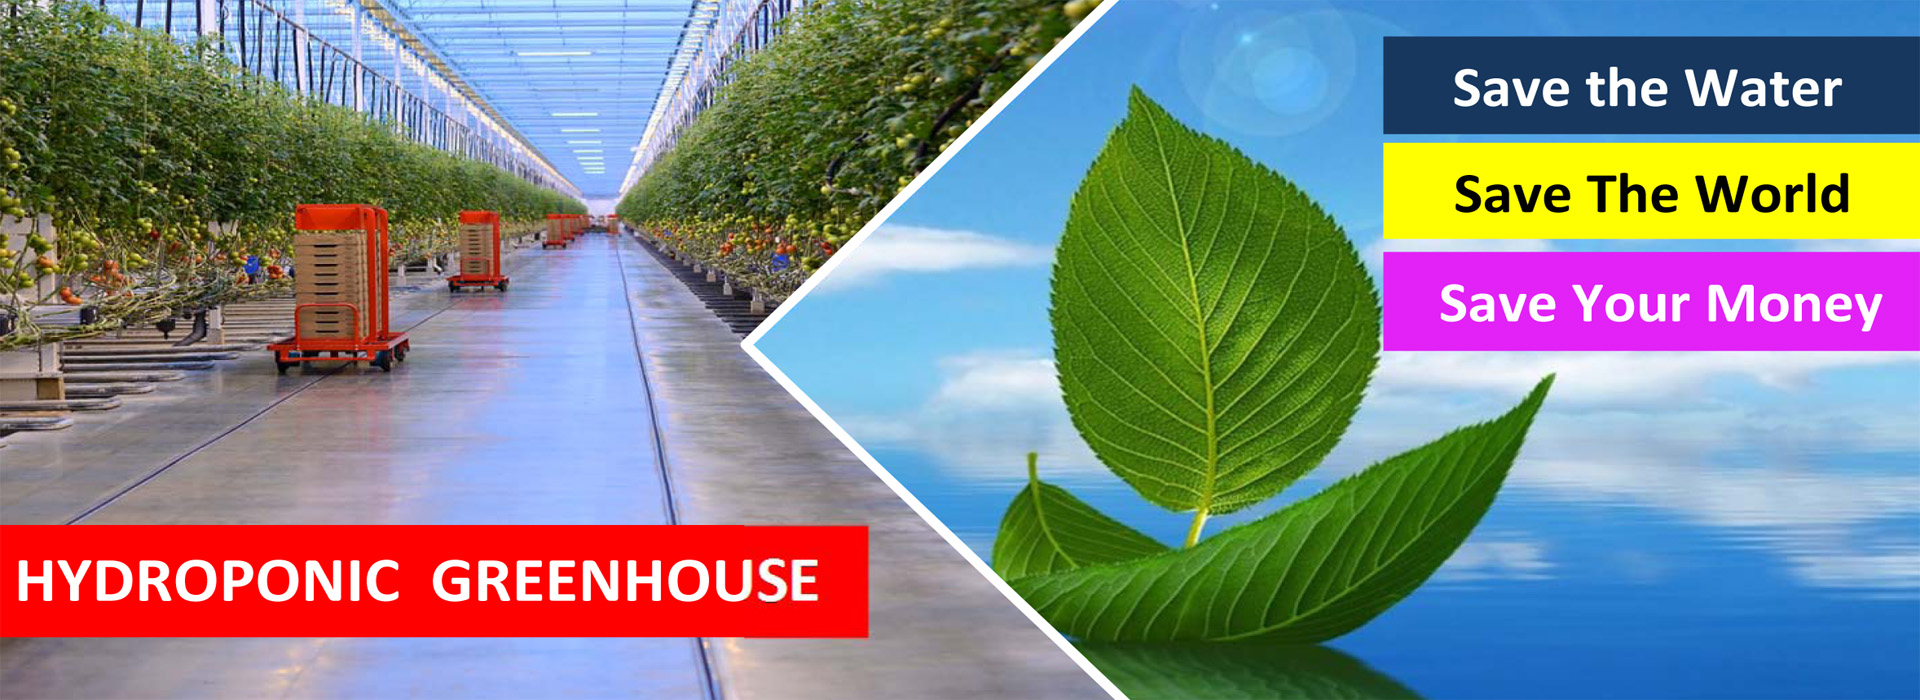 Hydroponic Greenhouse Save Water  Save the World  ITC Ltd